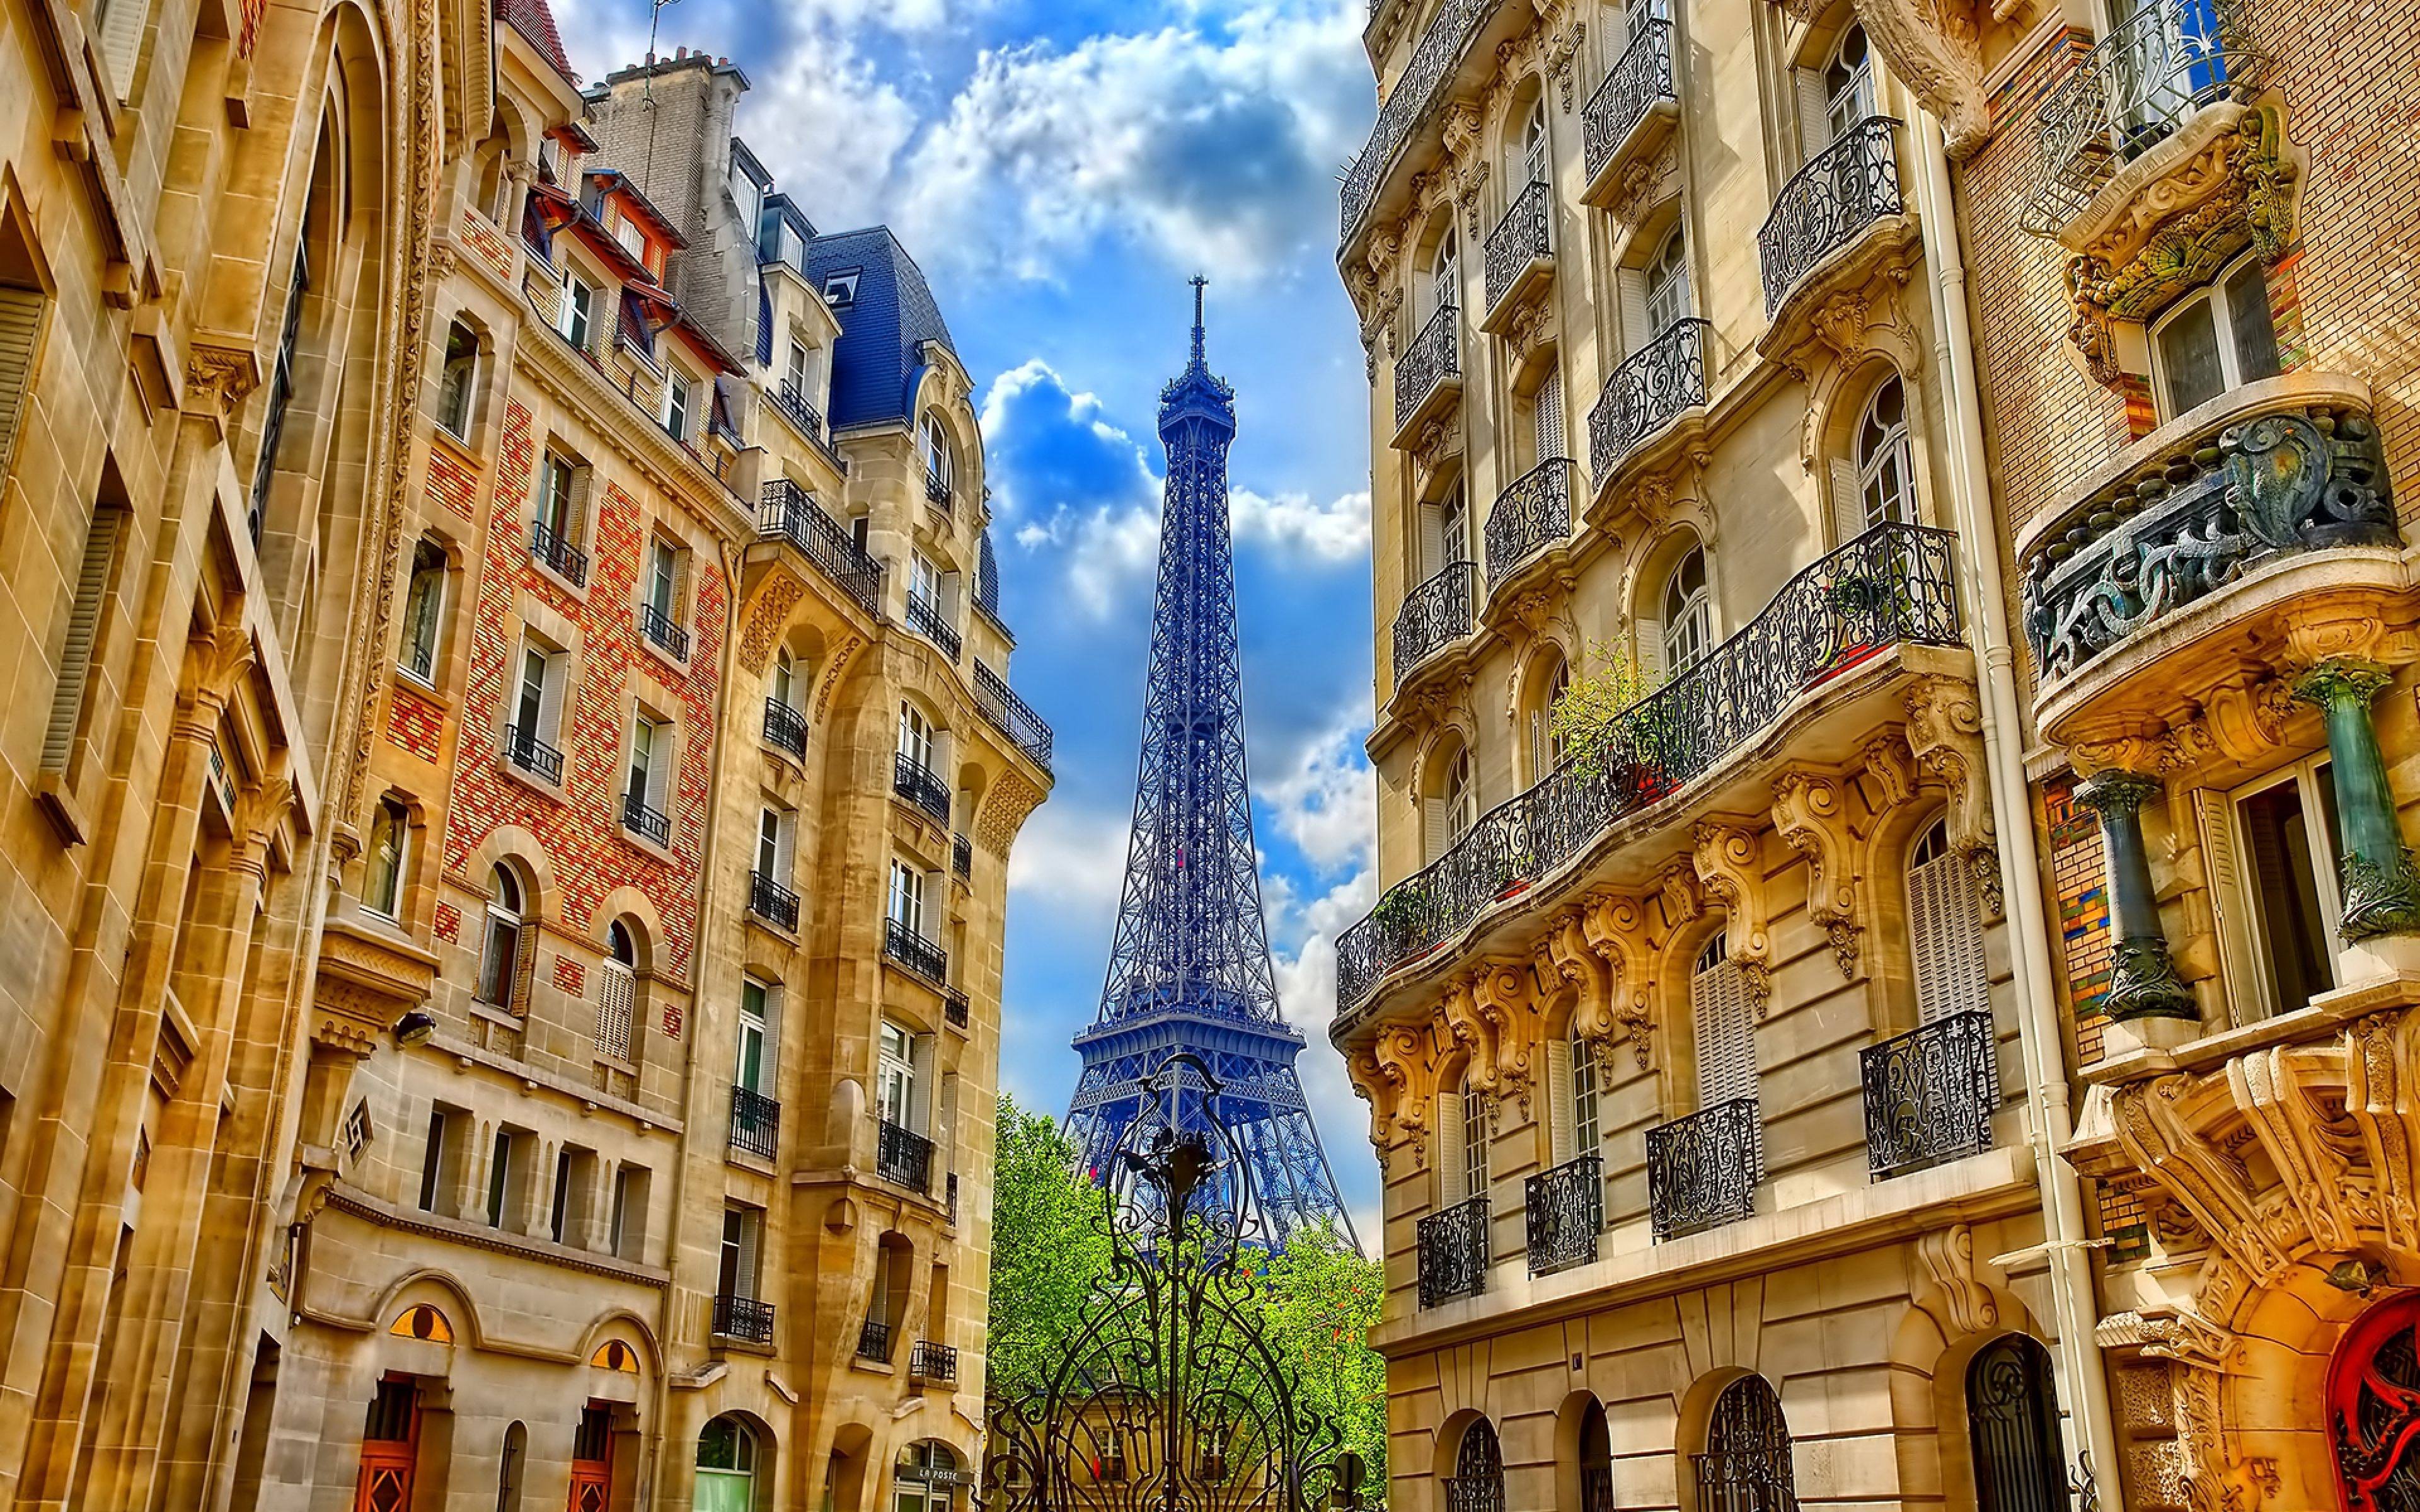 Must see Wallpaper High Quality Paris - 80334-paris-eiffel-tower-french-architecture-4k-ultra-hd-wallpaper  Image_521171.jpg